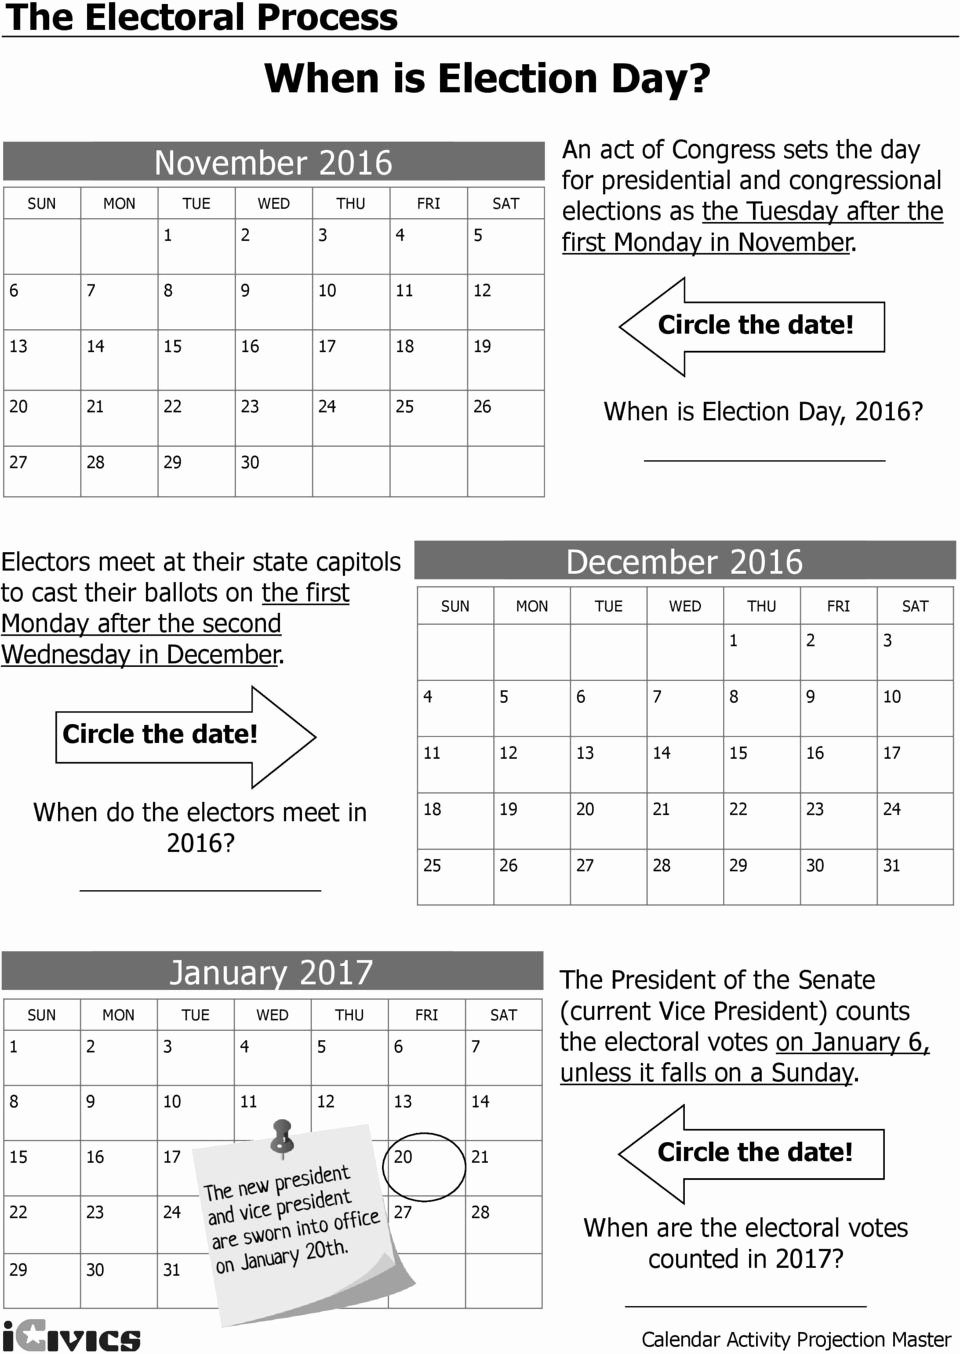 The Electoral Process Worksheet Answers New the Electoral Process Step by Step the Worksheet Activity